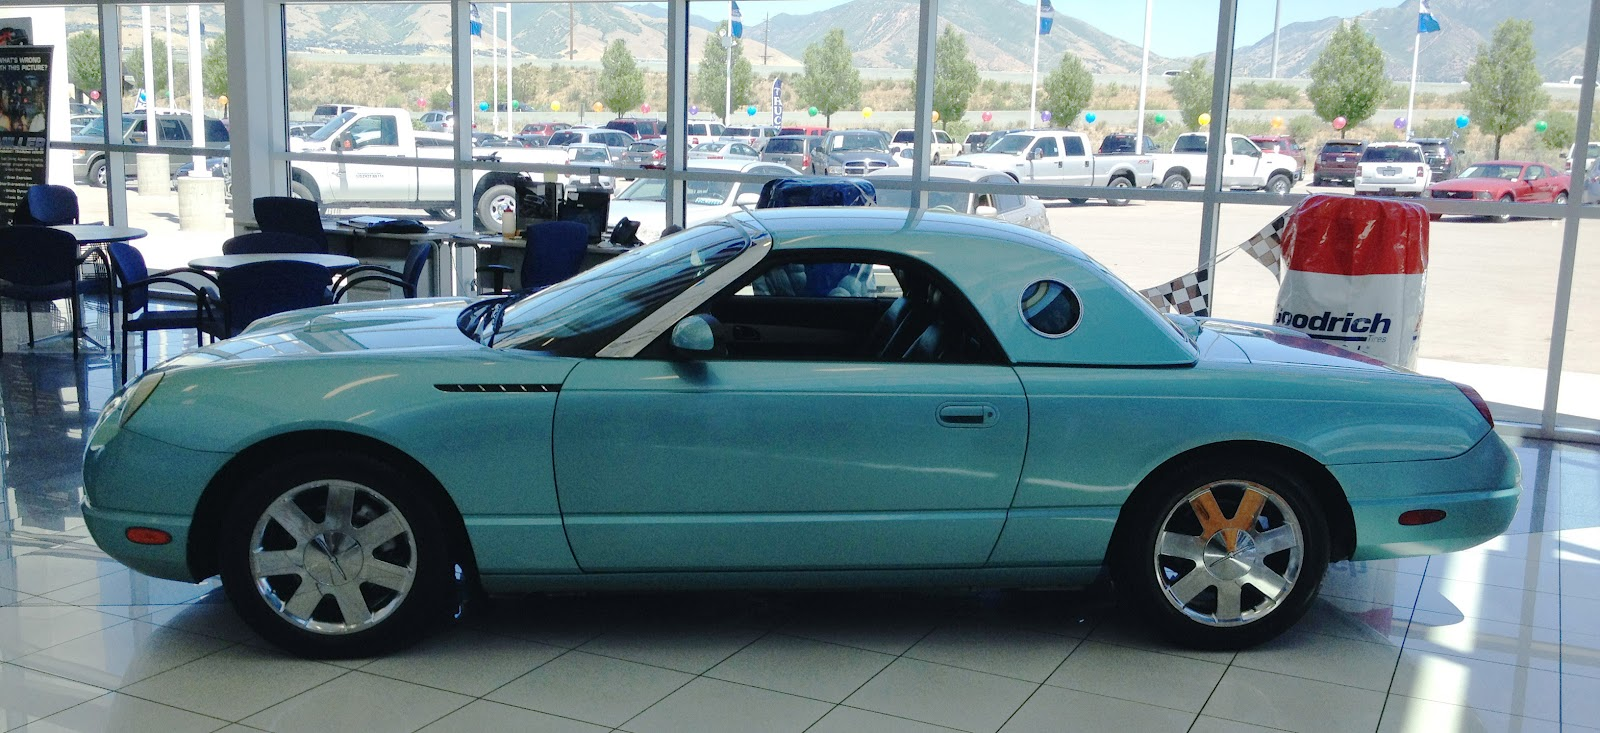 2002 ford thunderbird information and photos zombiedrive. Cars Review. Best American Auto & Cars Review